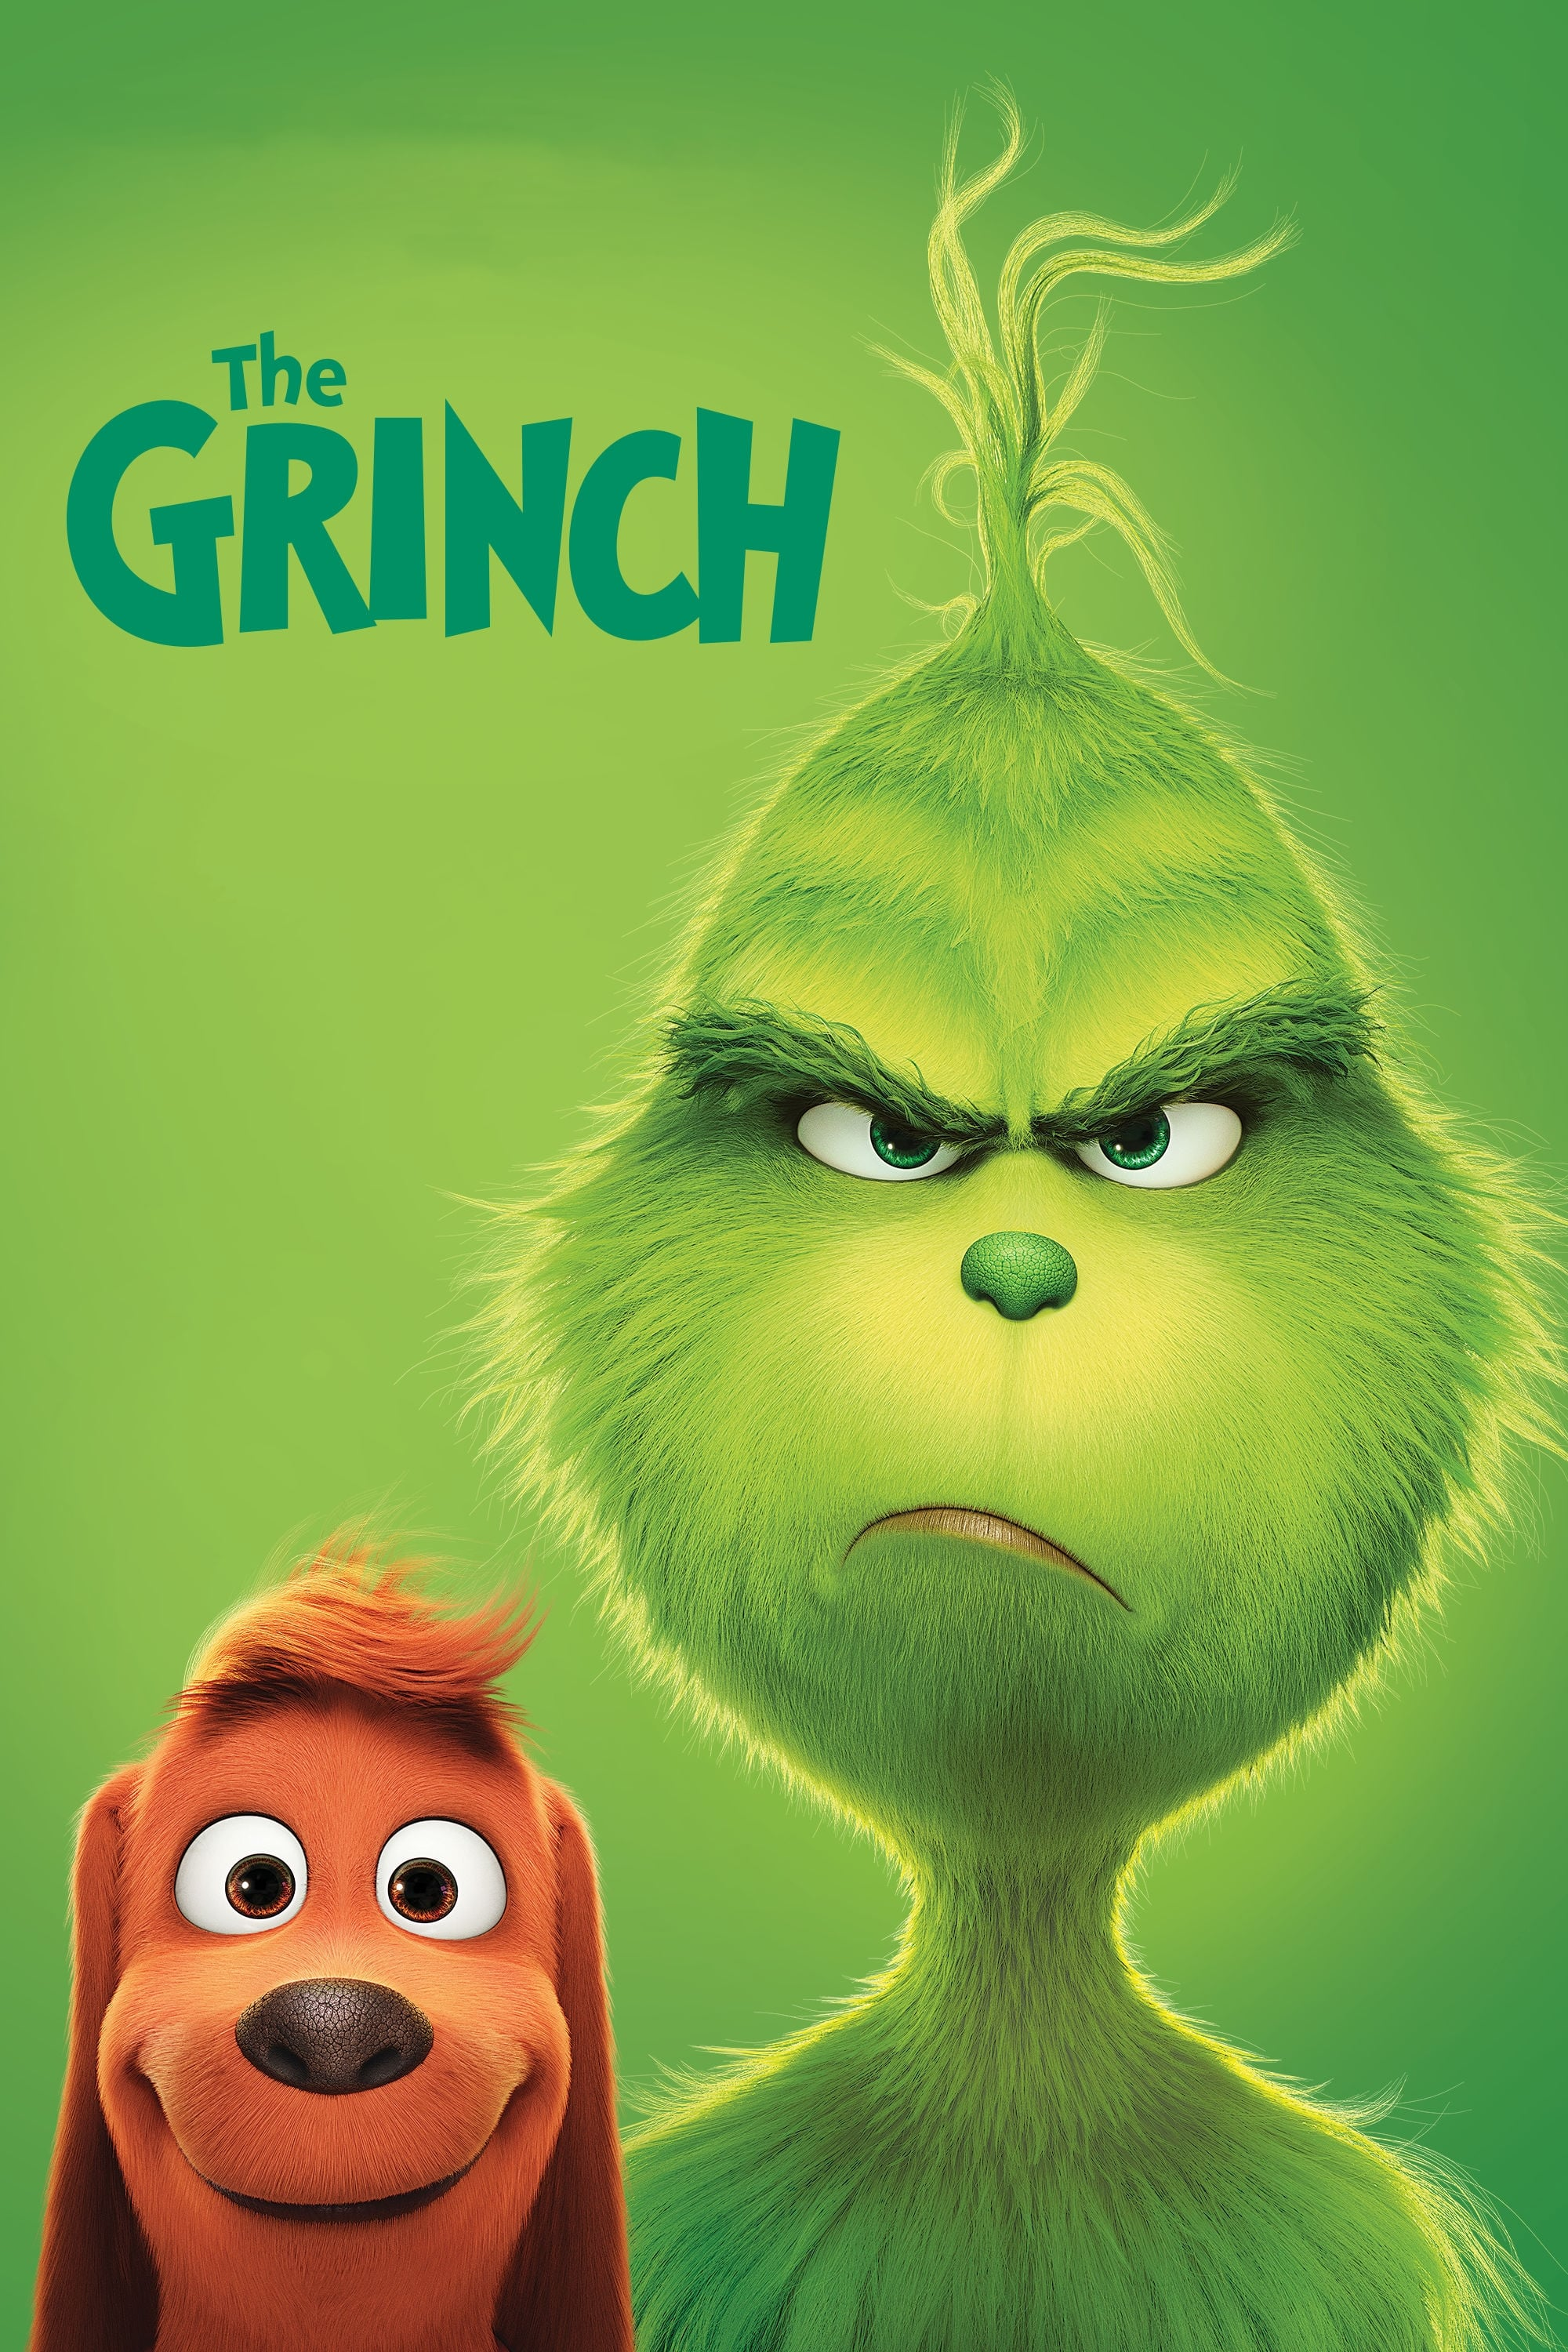 El Grinch (2018) HD 1080P LATINO/INGLES